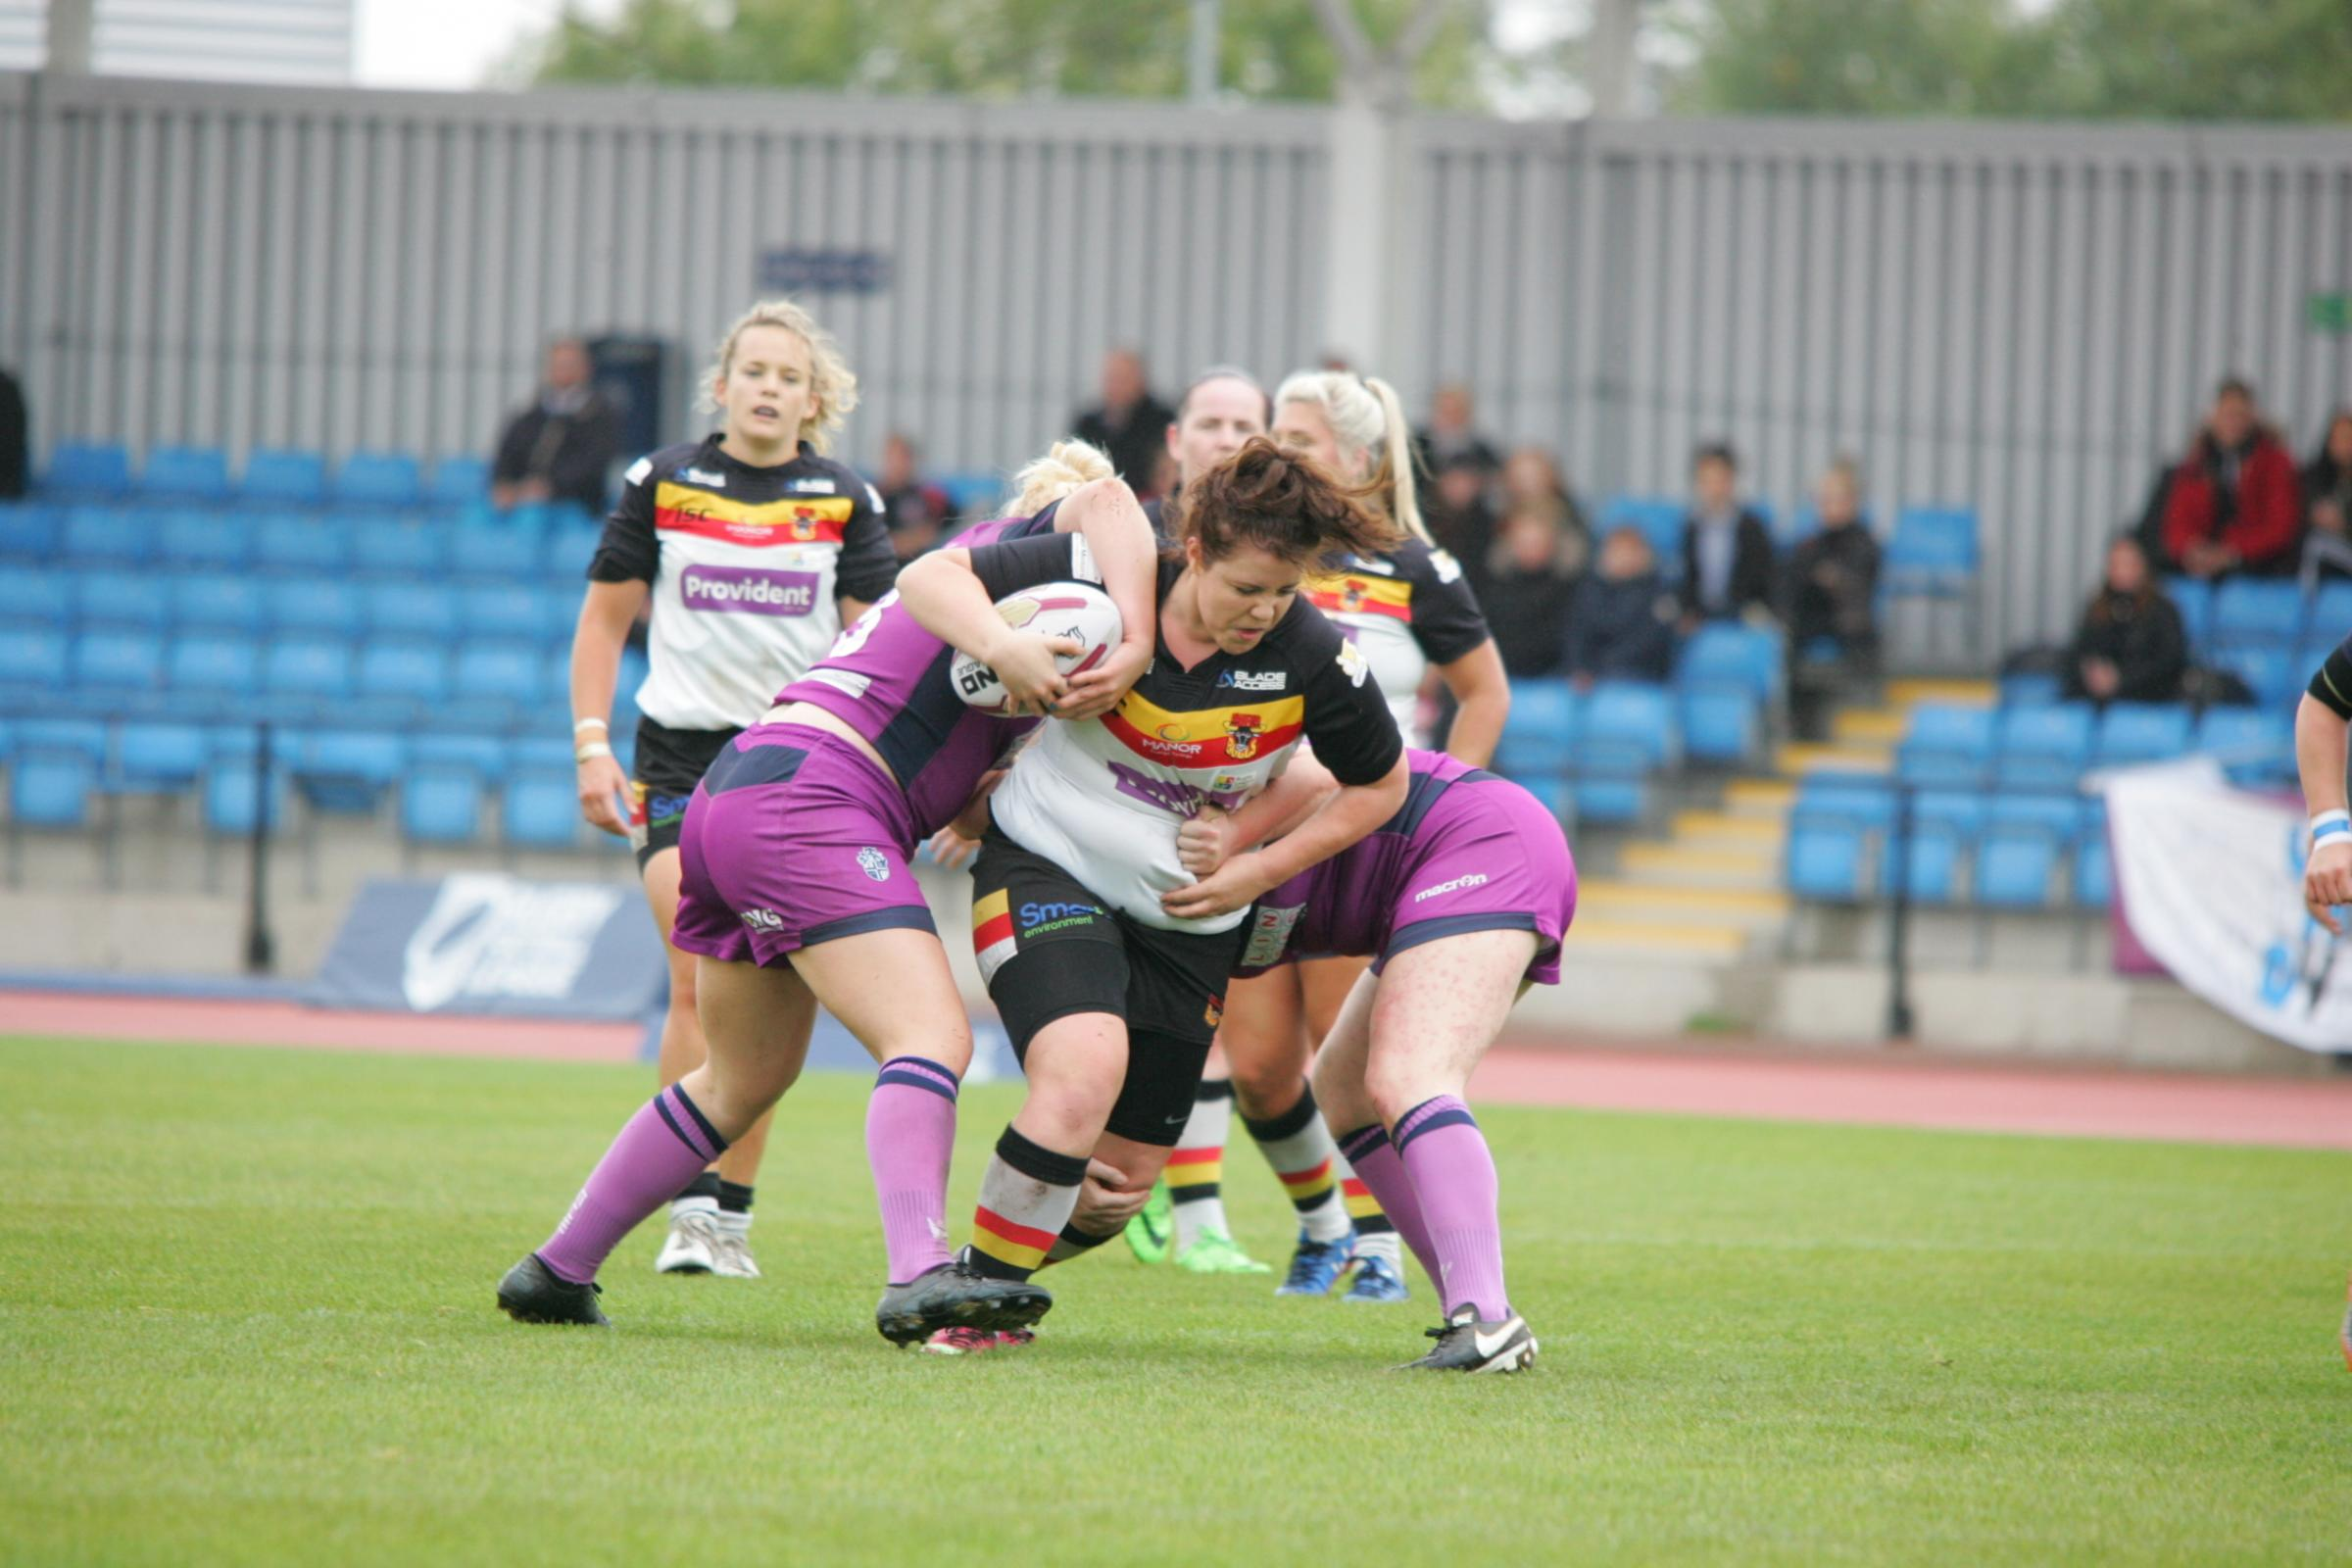 HAT-TRICK: Prop Debbie Smith, who scored a hat-trick for Bradford Bulls Women against York City Knights Ladies